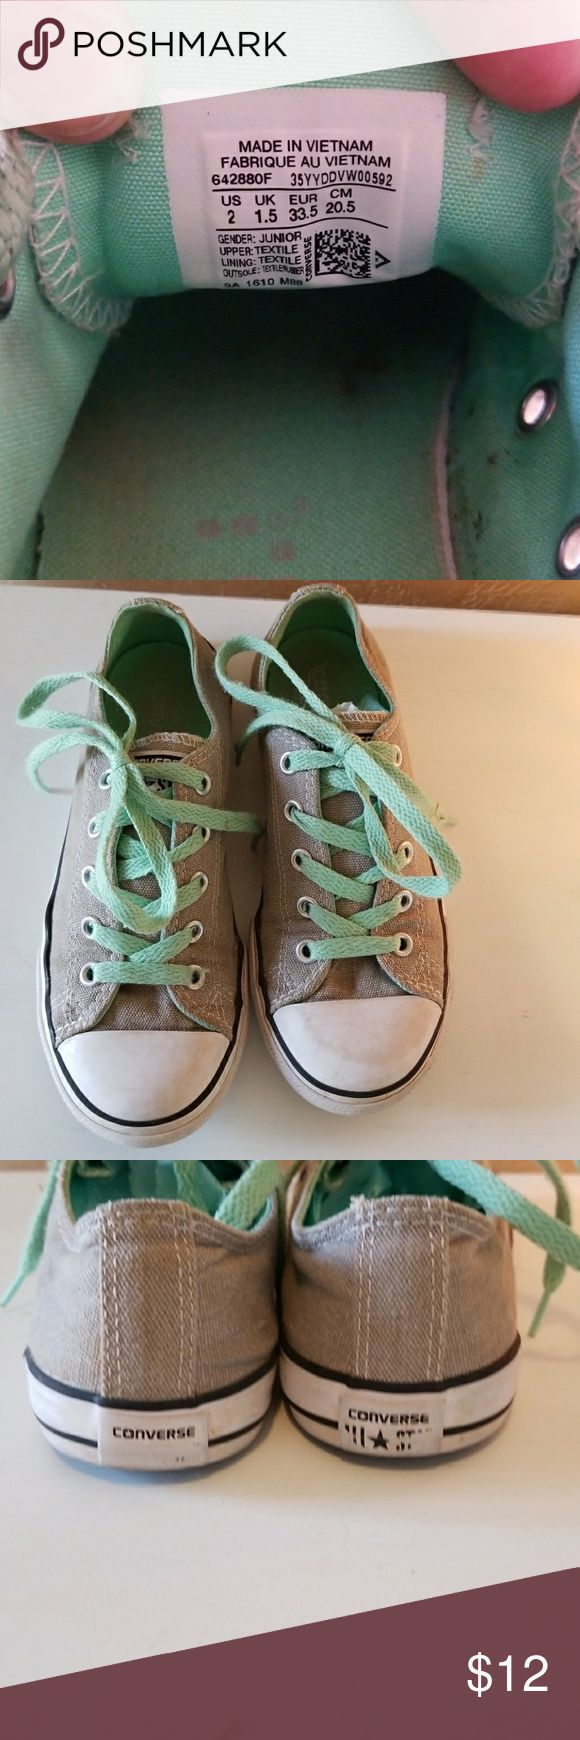 Converse Shoes Gray and Teal kids size 2 Converse Shoes Gray and Teal kids size 2. For sure used and has some scuffs as shown in the photos. From a smoke free home. Converse Shoes Sneakers